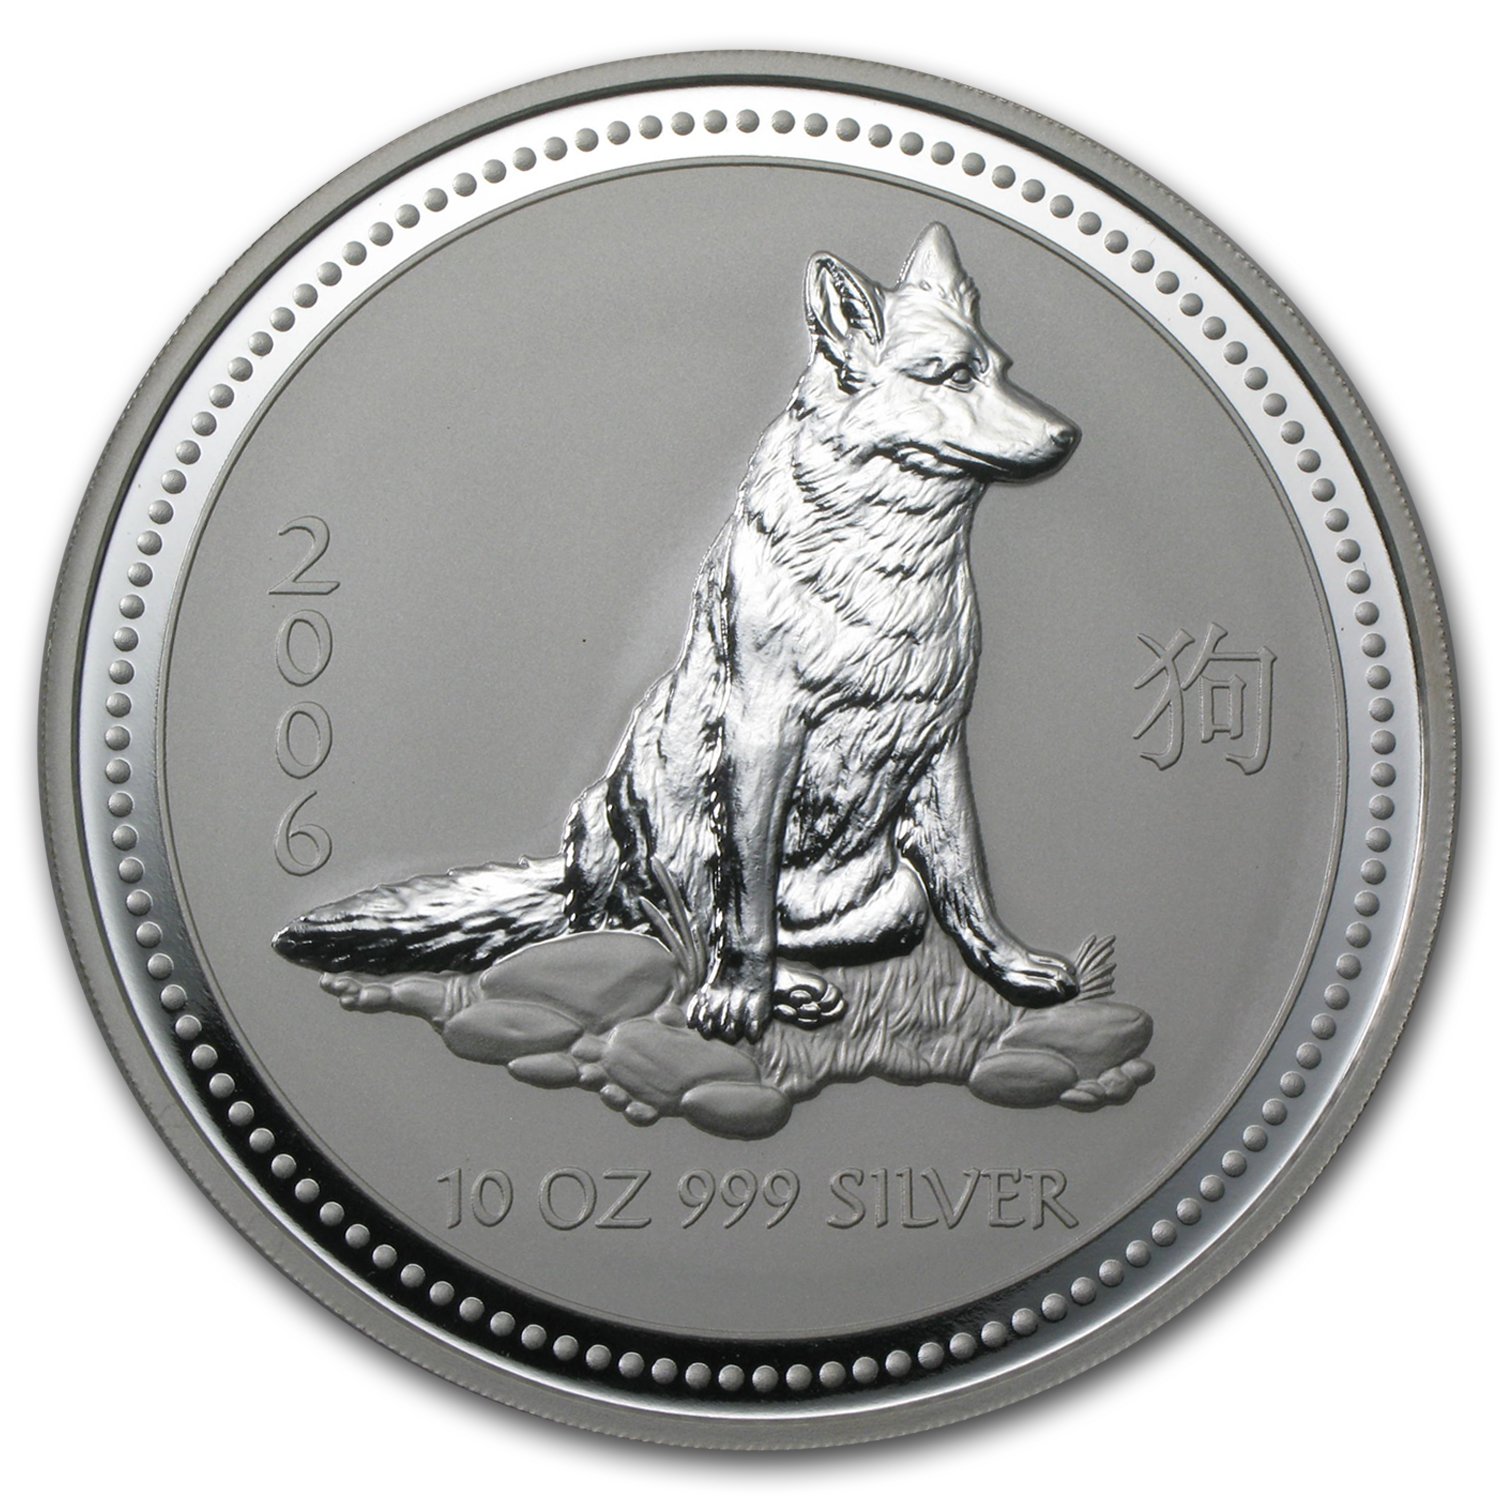 2006 10 oz Silver Australian Year of the Dog BU